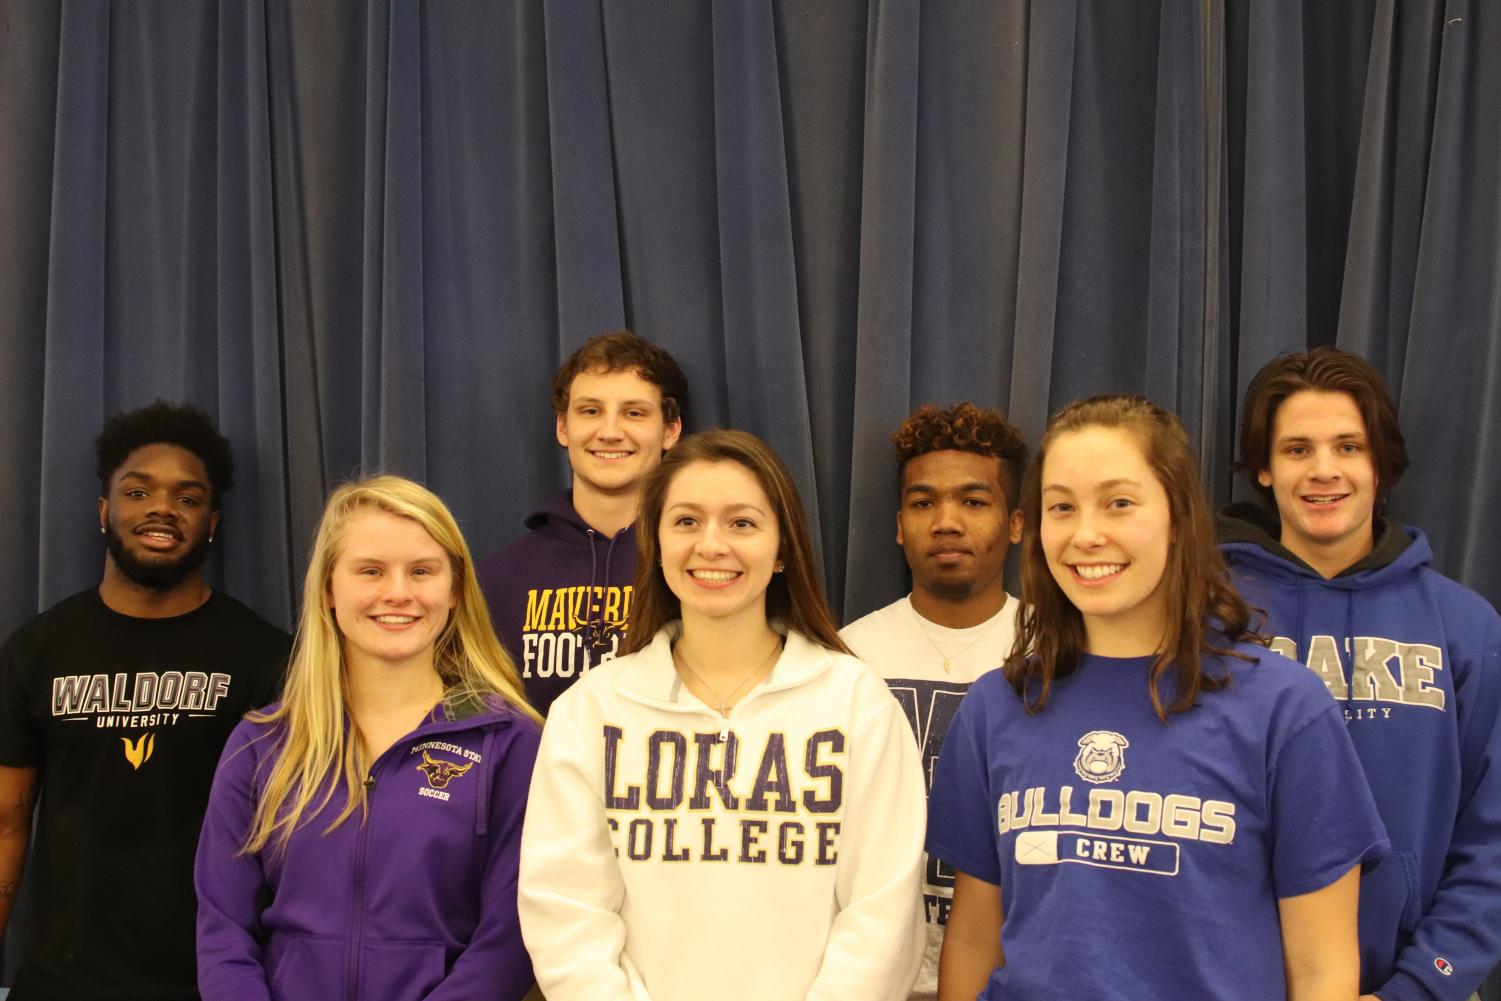 (L-R): Athletes Davonte Foster, Sydney DePrenger, Bryce Hunger, Christina Hora, Marquel Poole, Clara Froeschner, and Jackson Meyer signed the National Letter of Intent in the Cafeteria on February 7th, 2018.